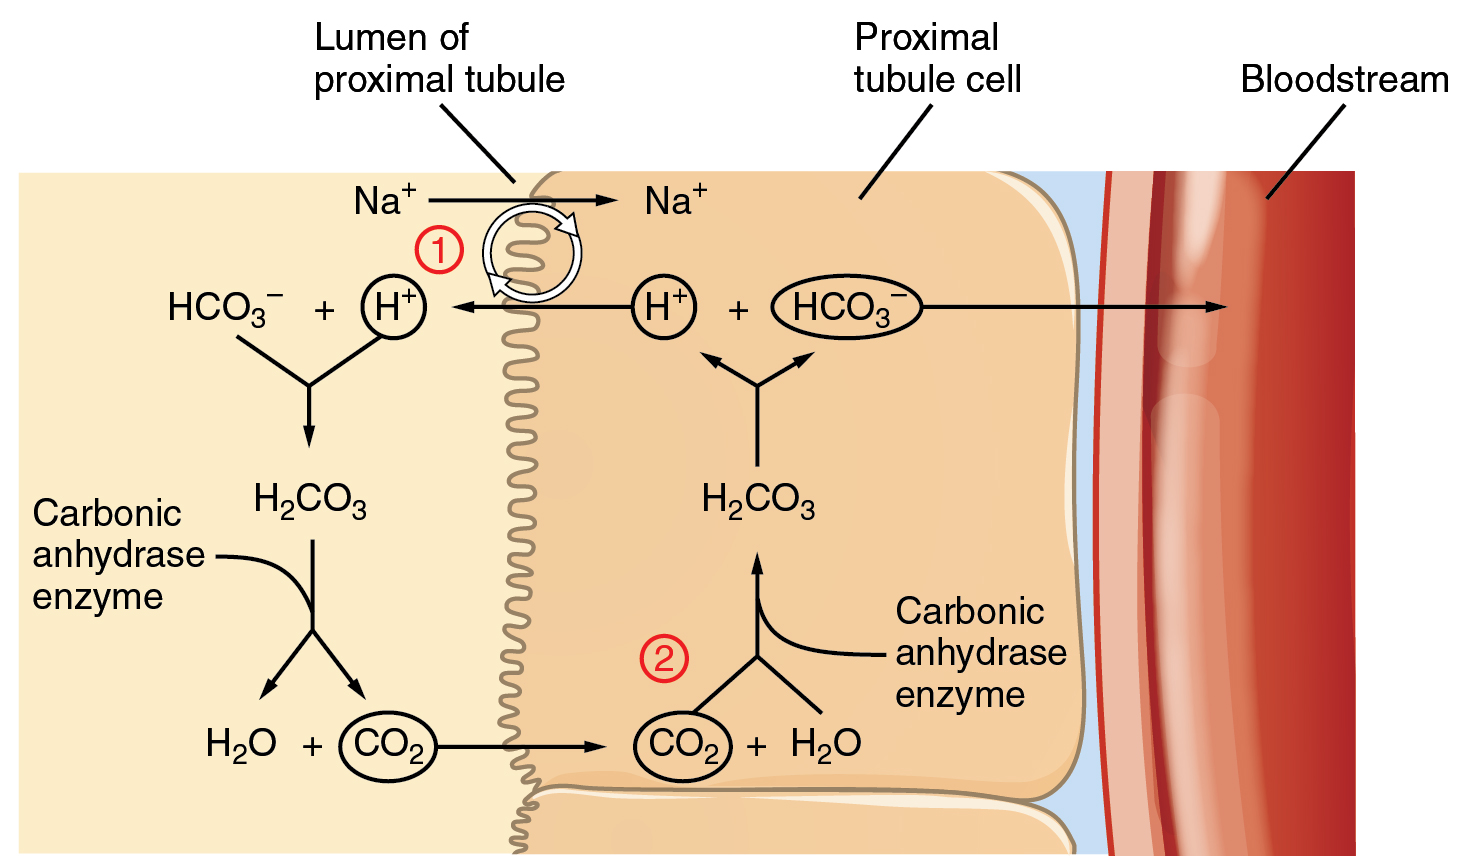 This Diagram Depicts A Cross Section Of The Left Wall Of A Kidney Proximal  Tubule